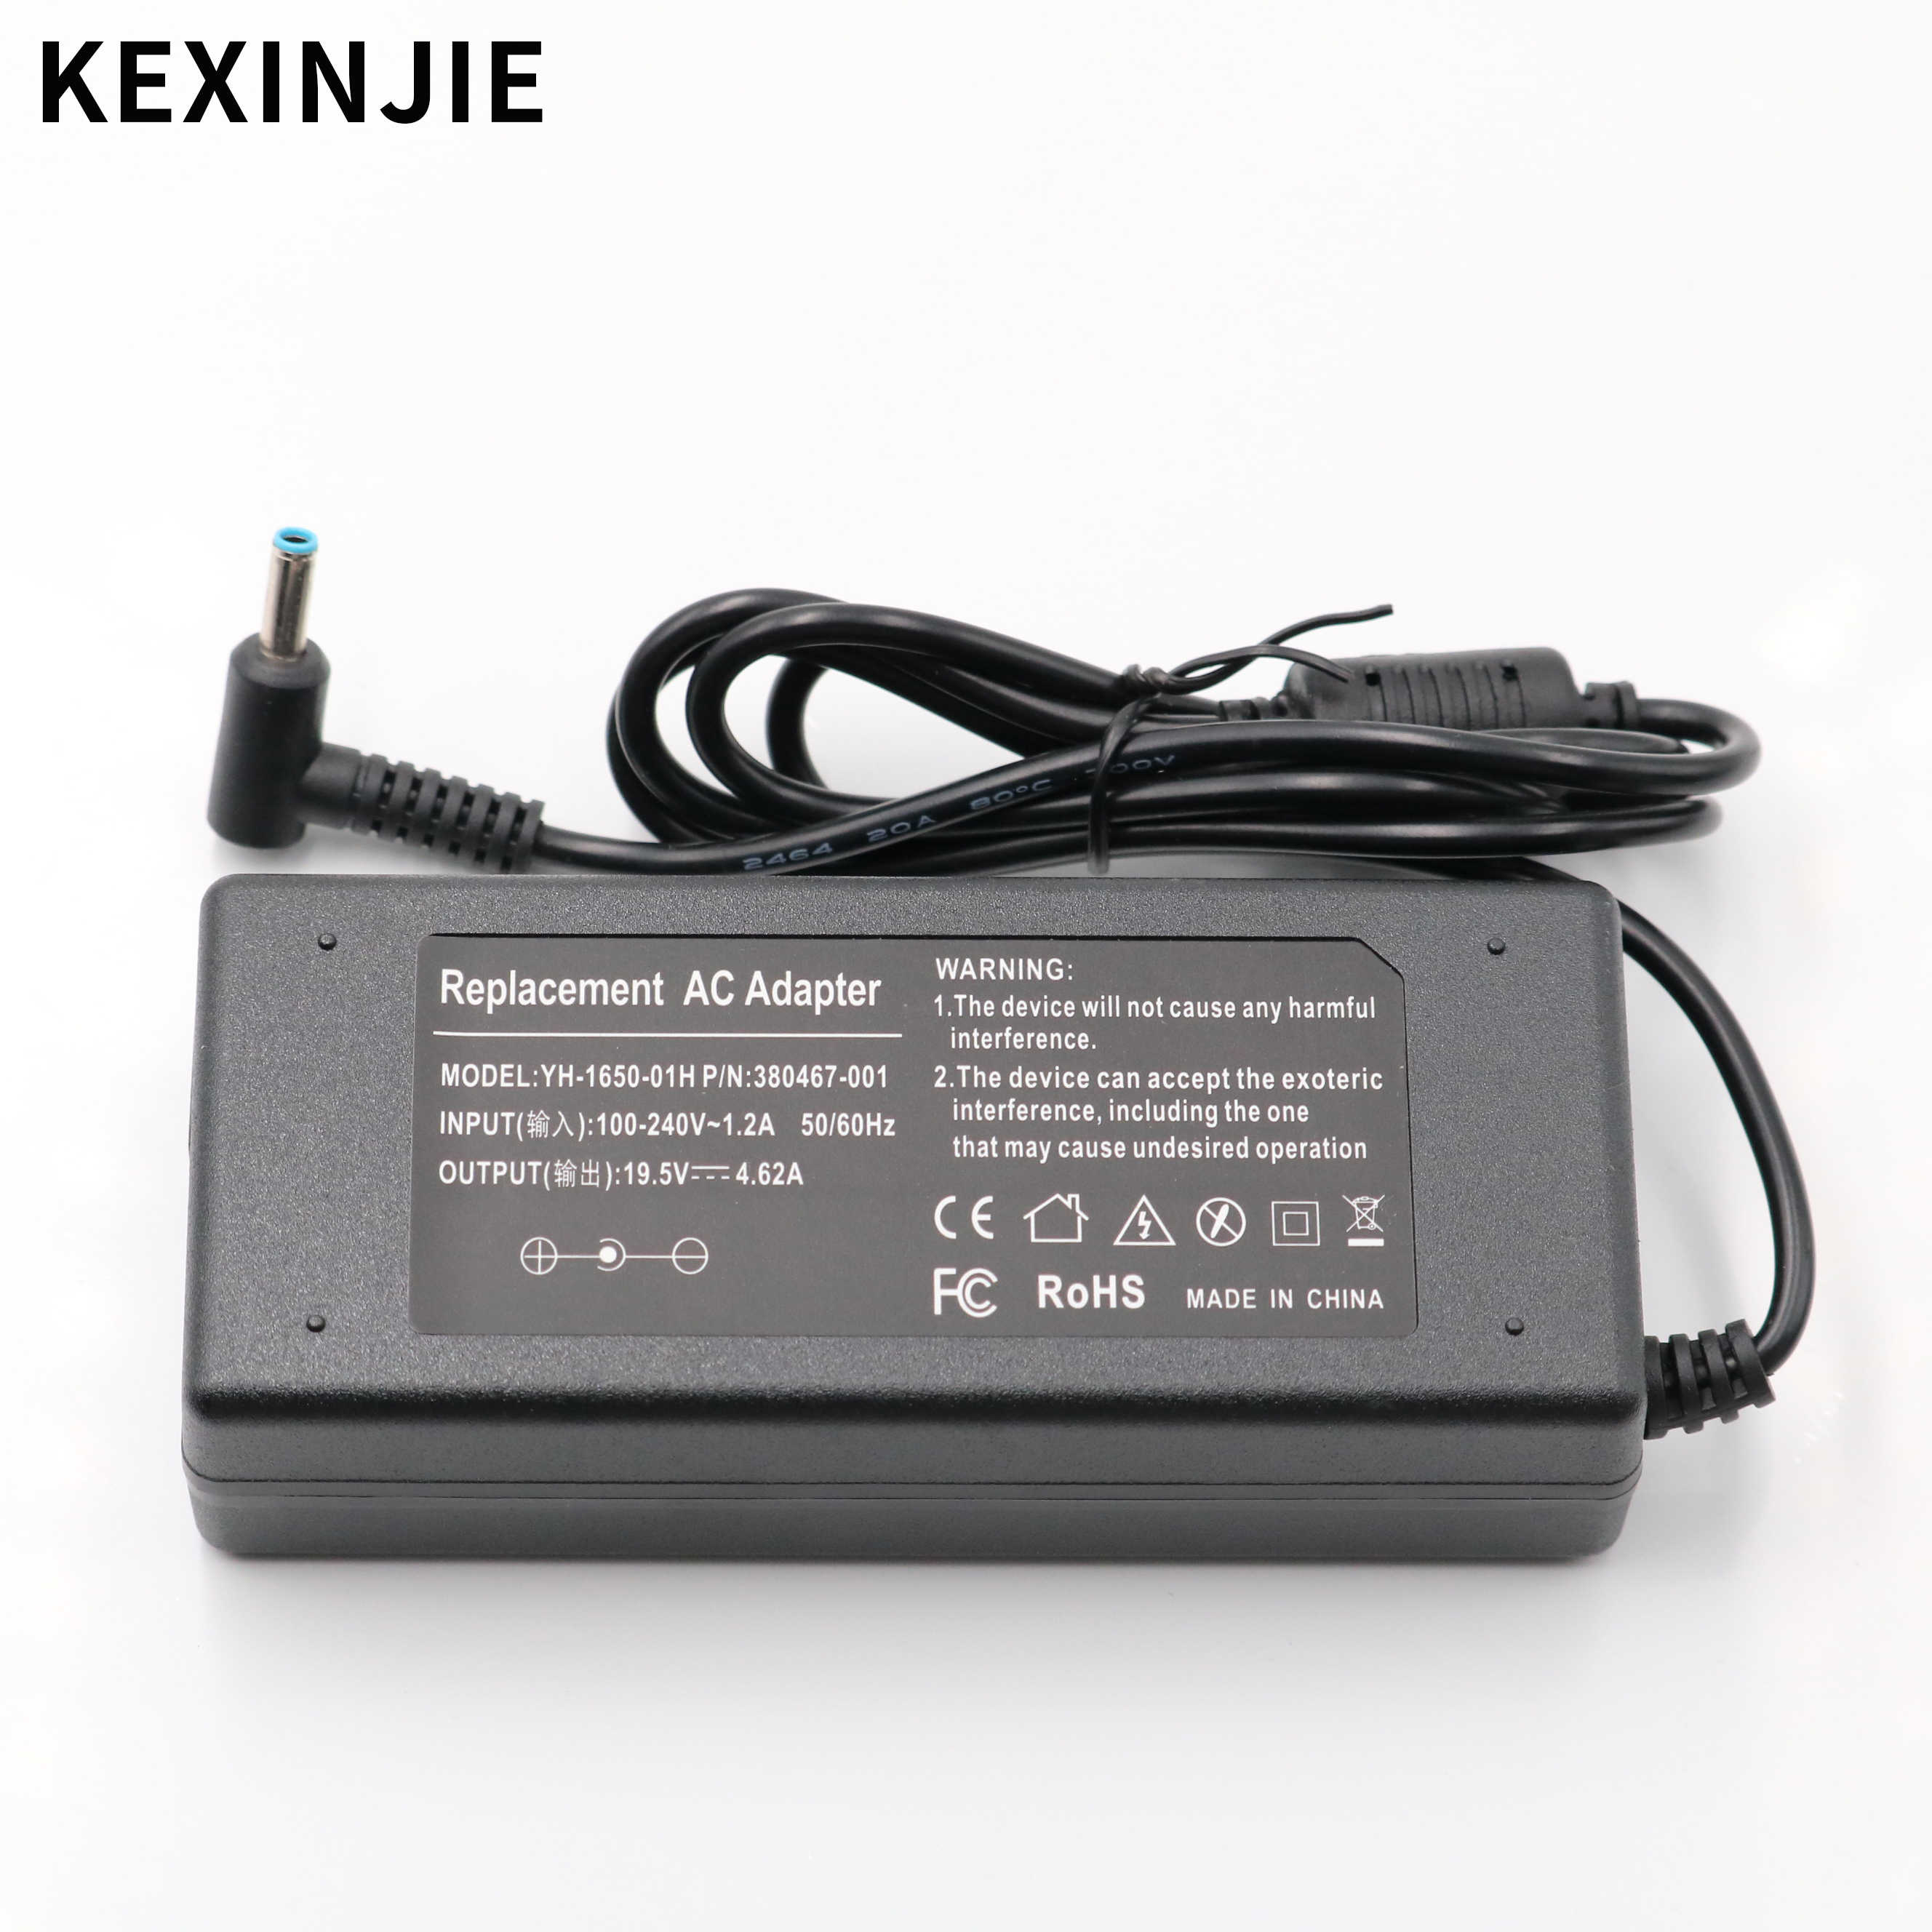 Easy Style 90W Laptop AC Adapter Charger For HP Pavilion 17-e127sf Pavilion 15 Notebook pc 15-e029TX 15-e026tx 14-e035tx 14-e022tx 14-e021tx m4-1010tx ENVY 17-j106tx 15-j105tx M4-1009TX